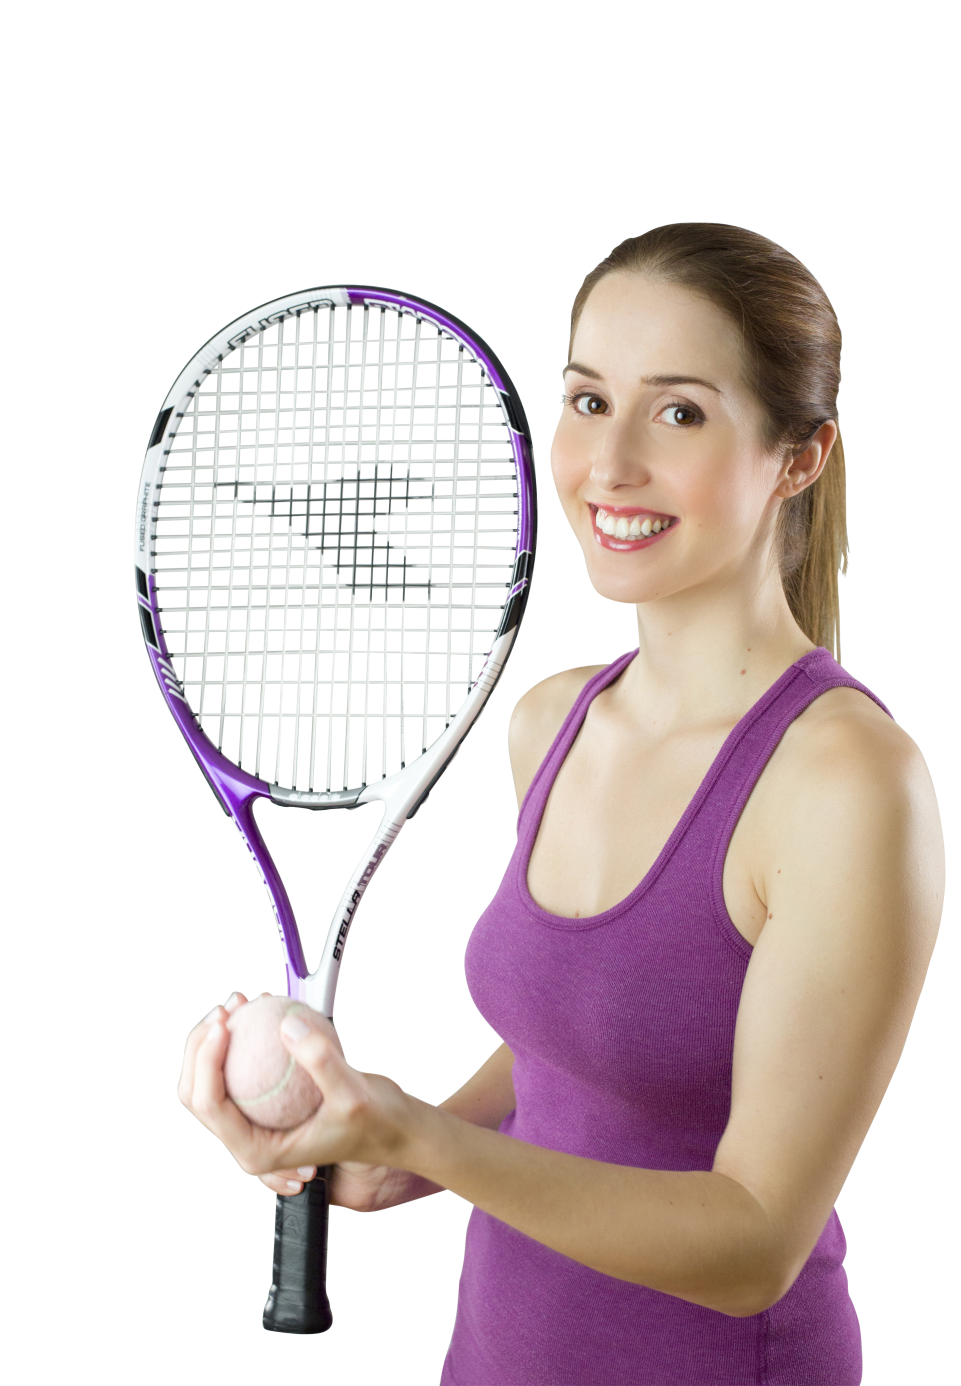 Female Tennis Player PNG Image